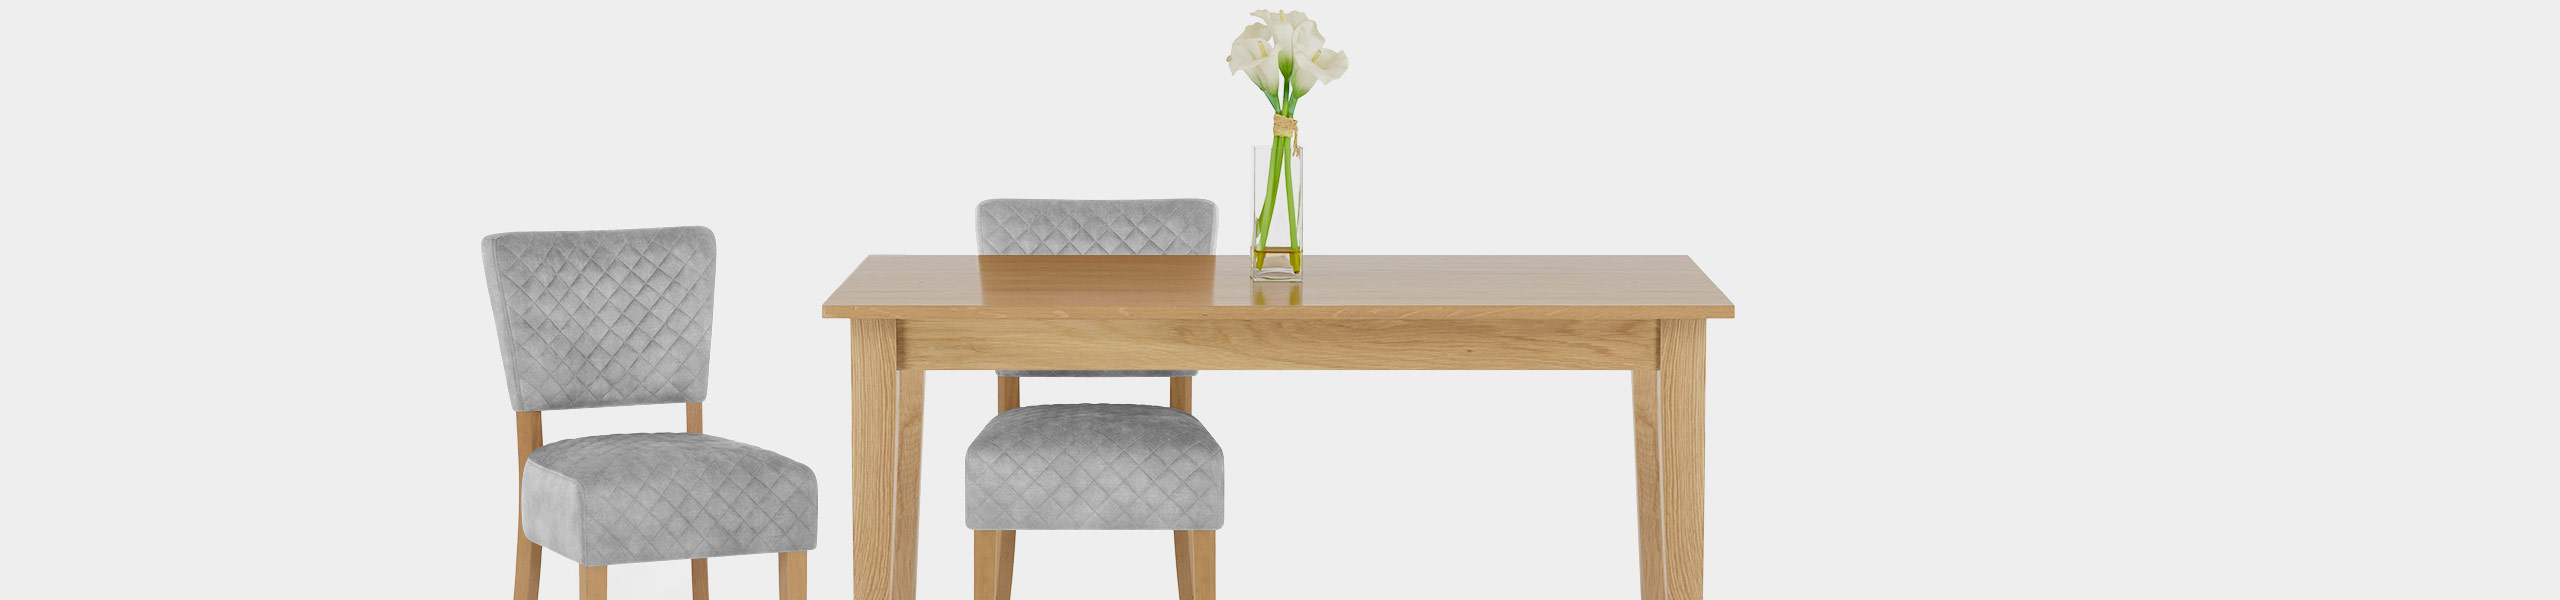 Ramsay Oak Dining Chair Grey Velvet Video Banner